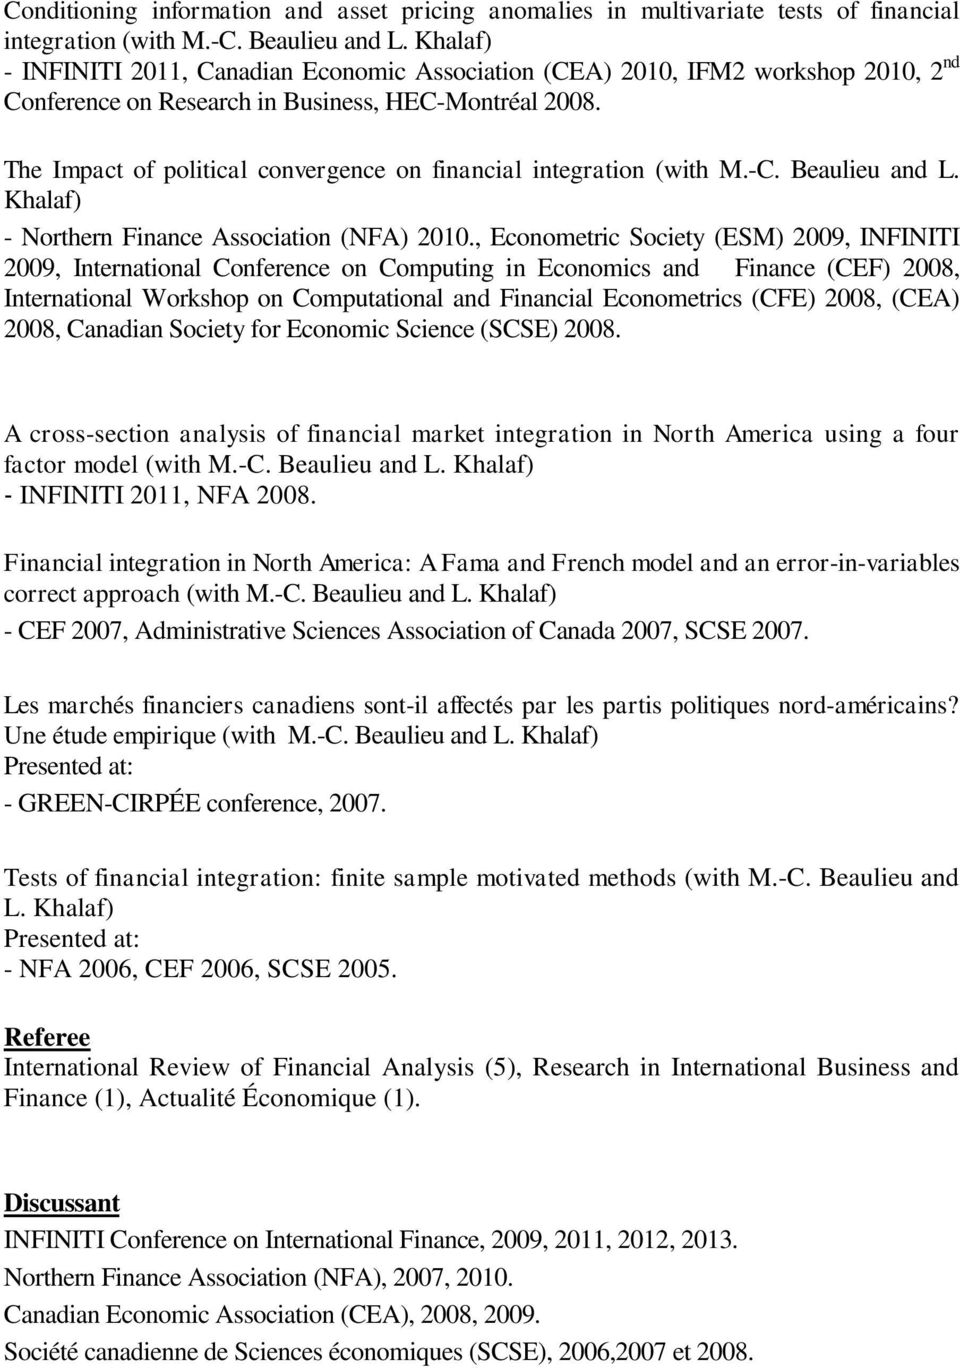 The Impact of political convergence on financial integration (with M.-C. Beaulieu and L. Khalaf) - Northern Finance Association (NFA) 2010.